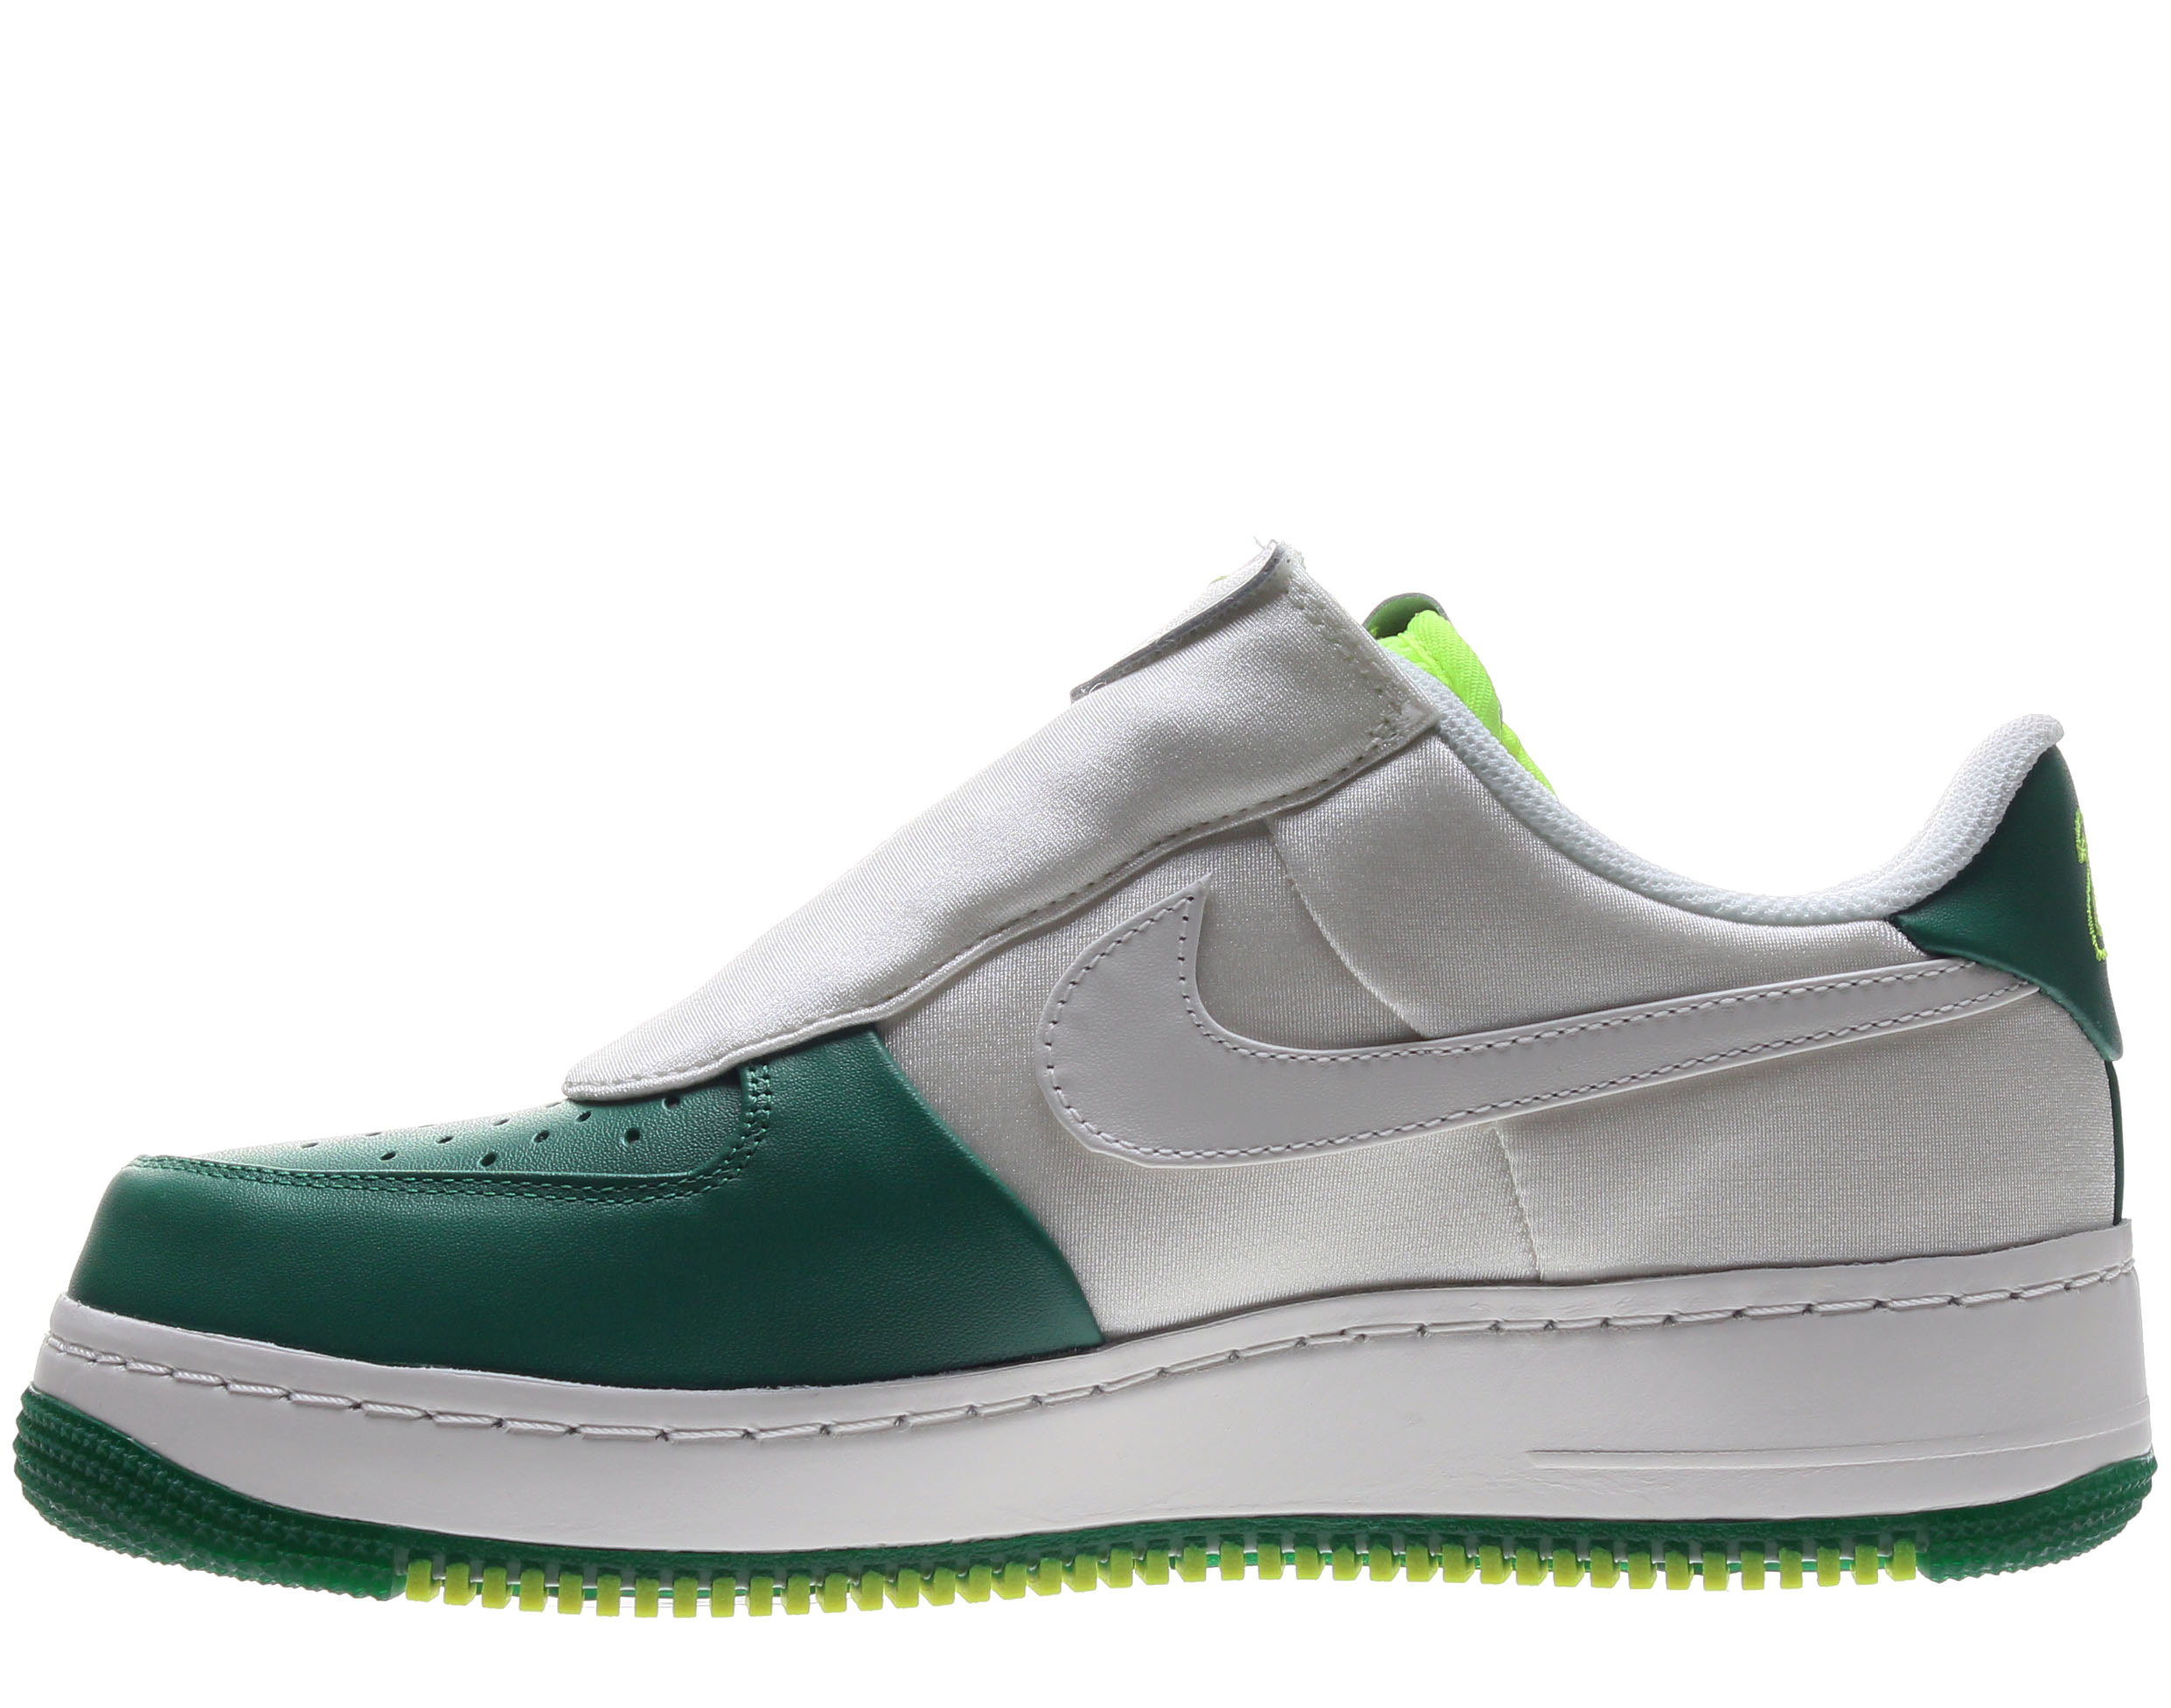 Nike Air Force 1 Low CMFT LW GP SIG Men's Basketball Shoes Size 10